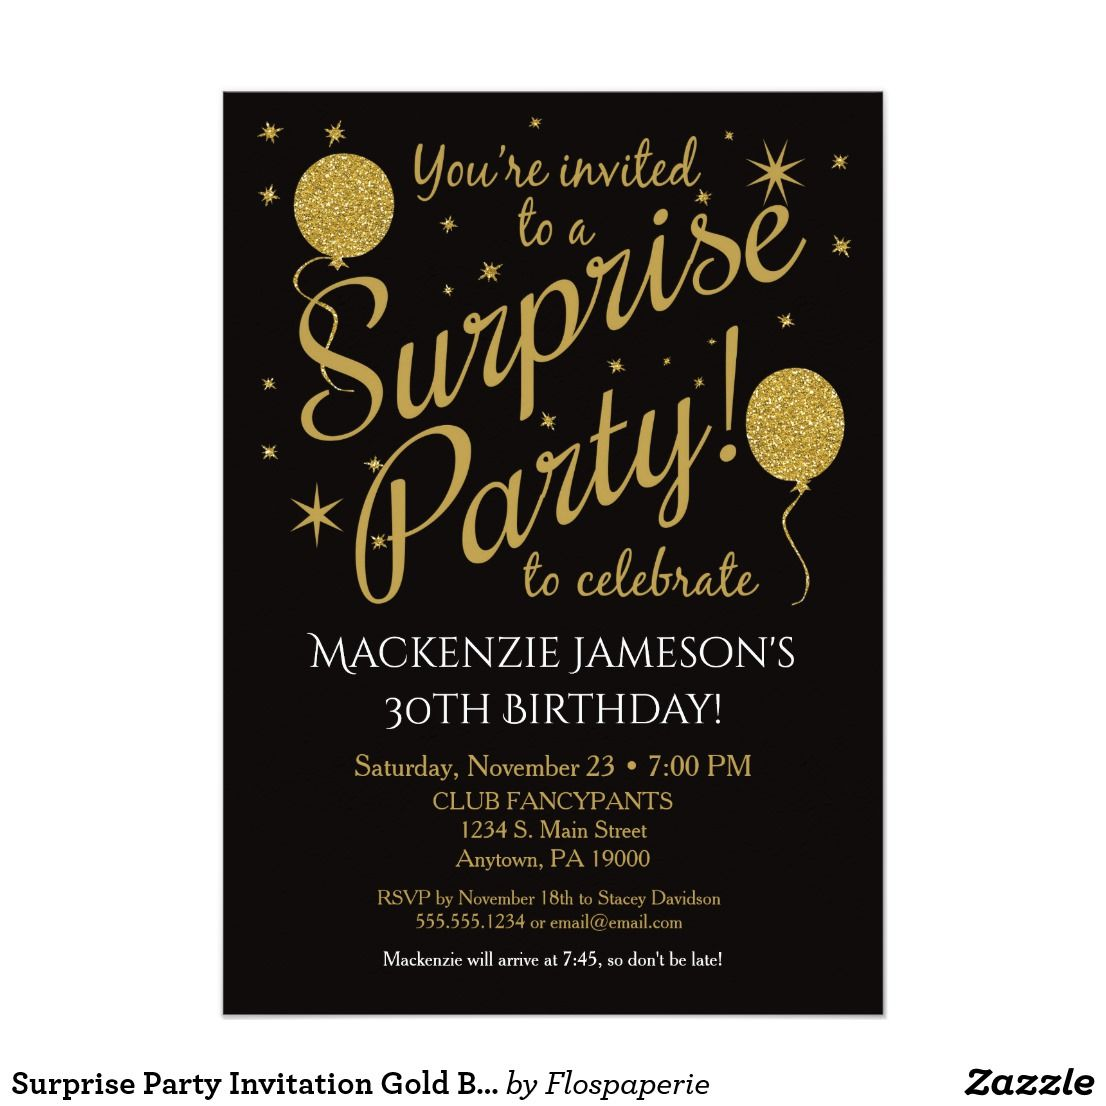 Surprise Party Invitation Gold Balloon Birthday | Surprise party ...